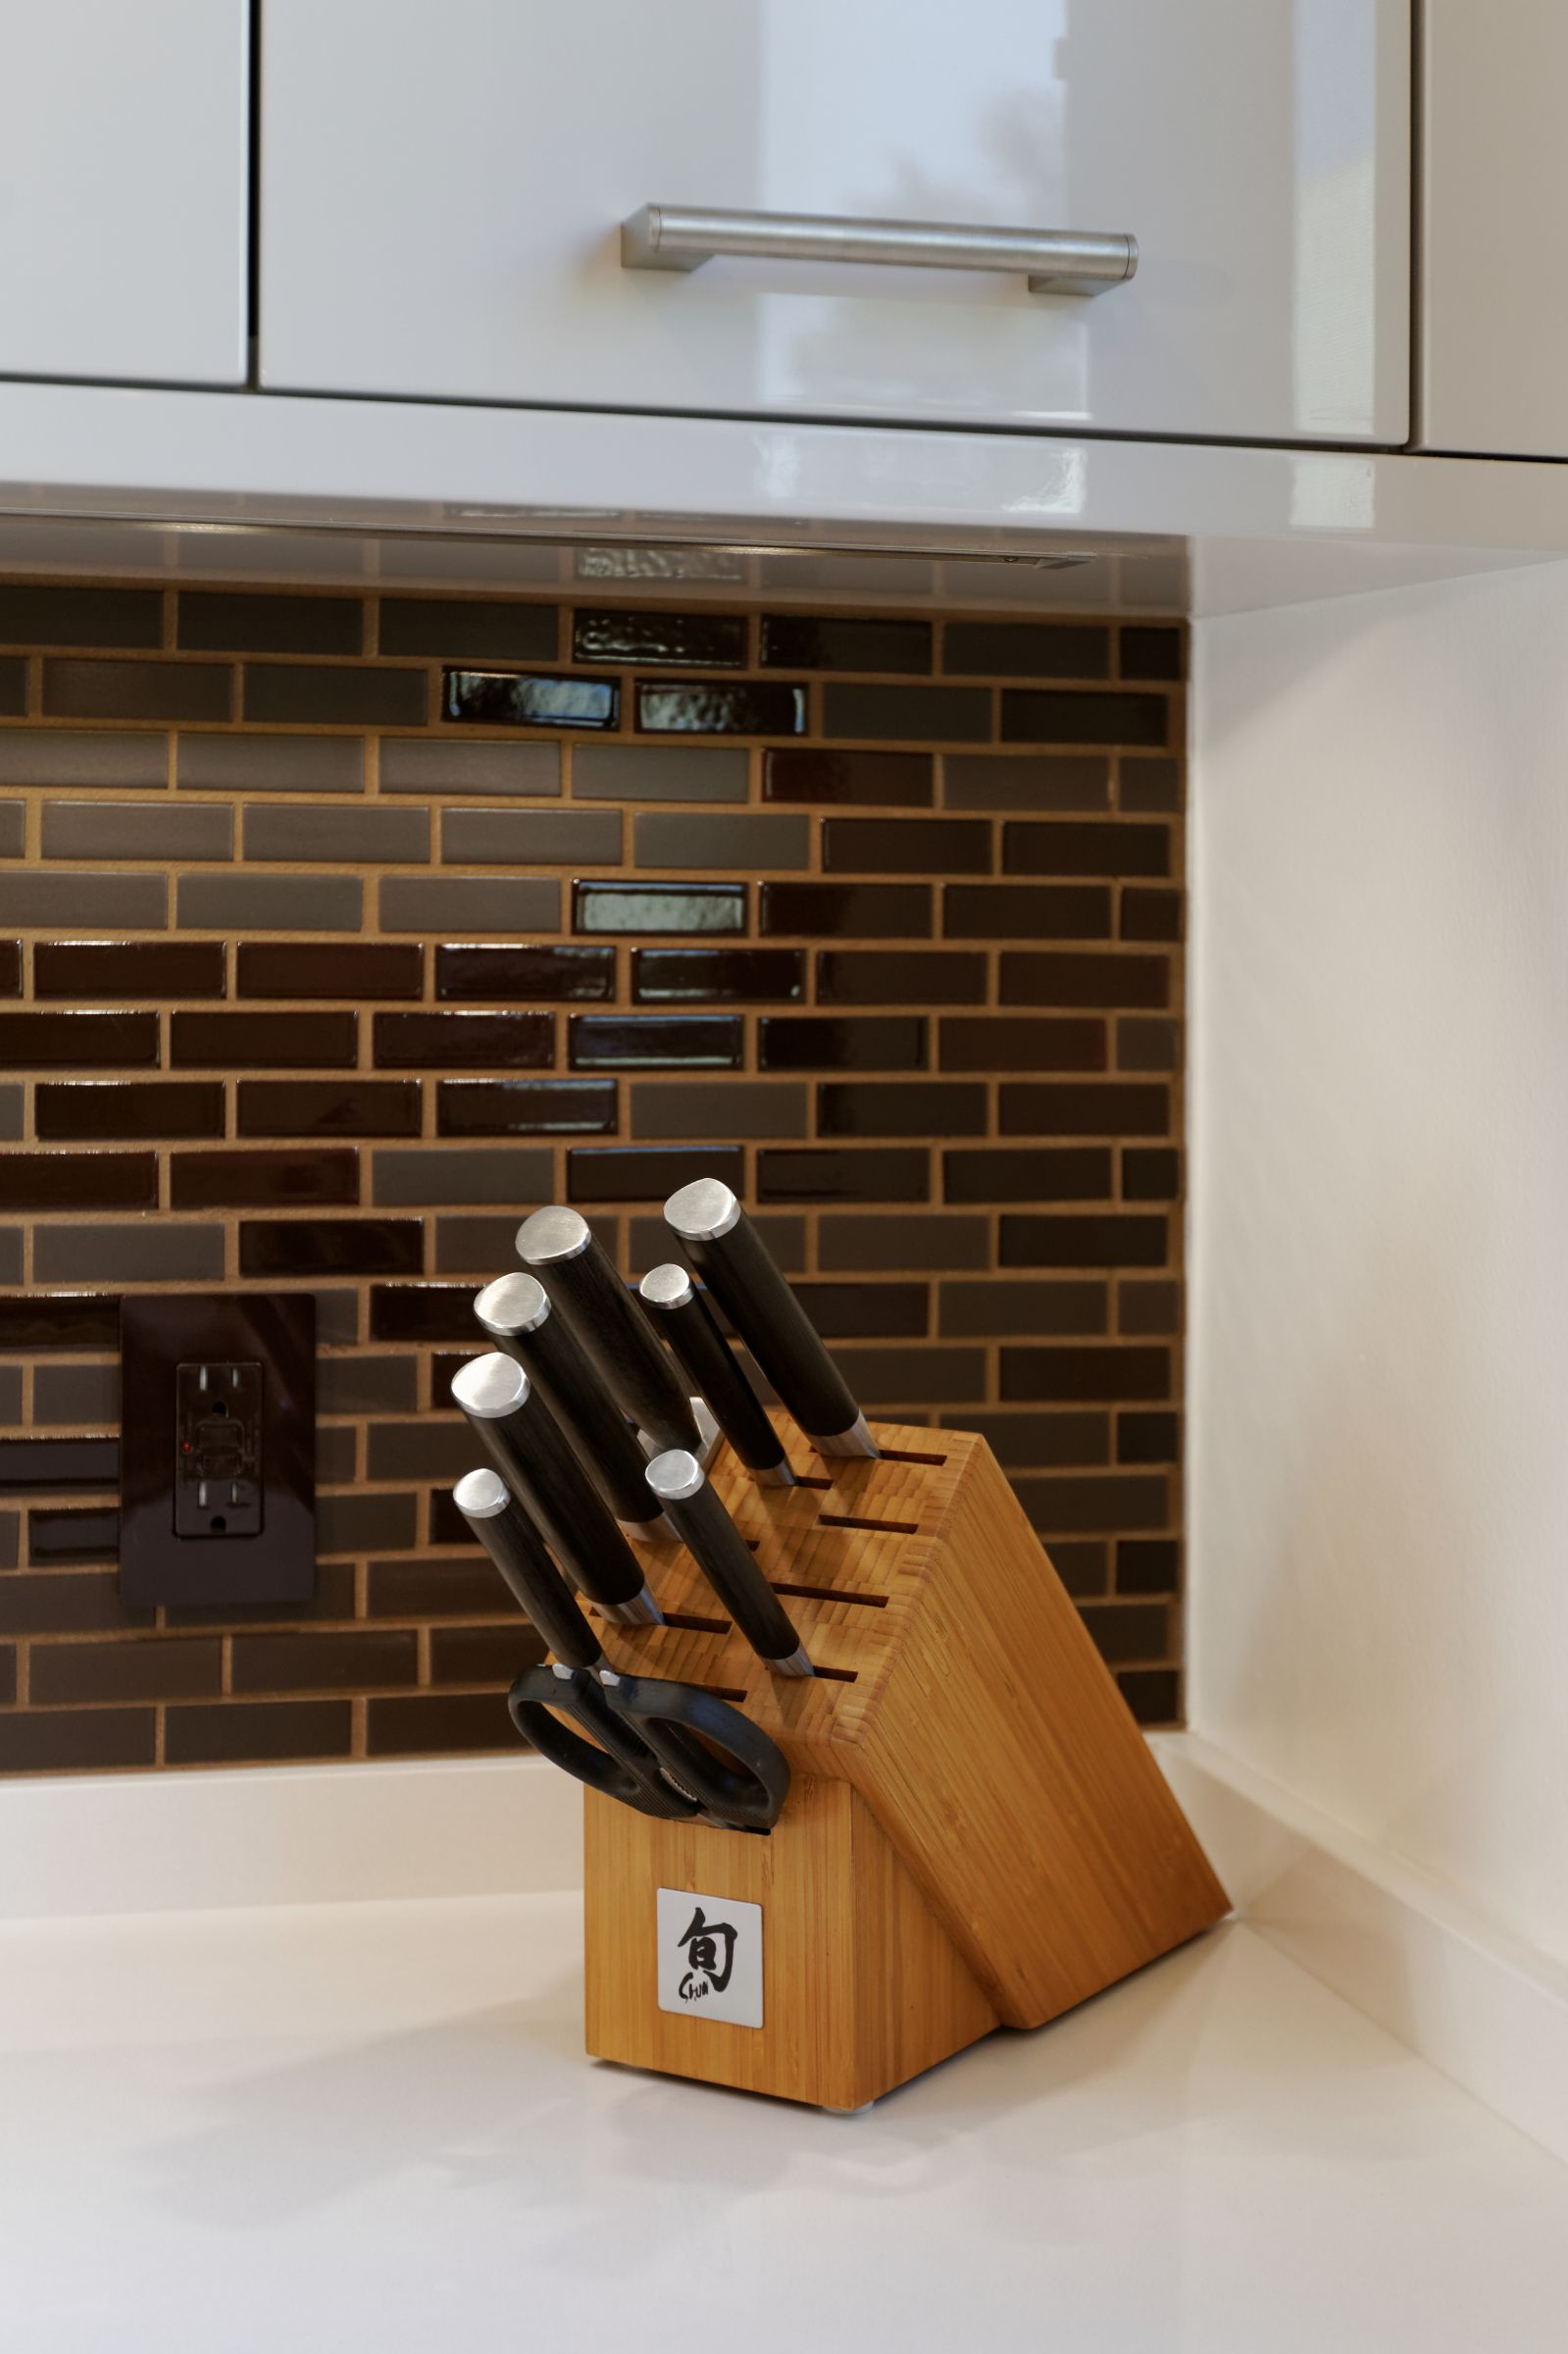 Even the knife block appears dramatic set in this beautiful uncluttered space.